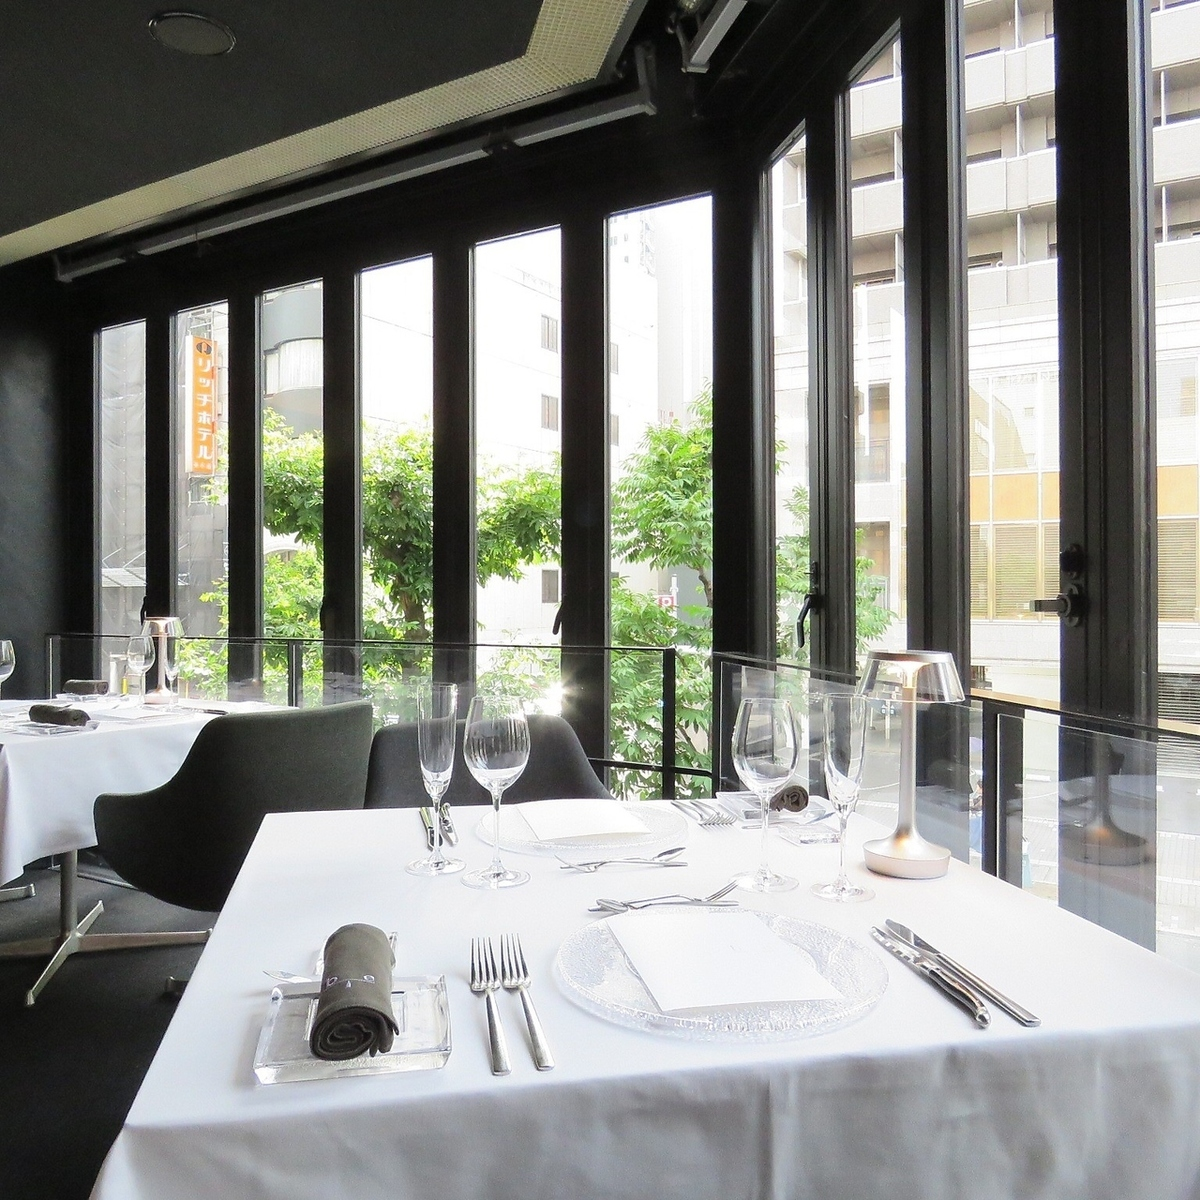 We are particular about silver and napkin so that we can enjoy meal in high-quality space.